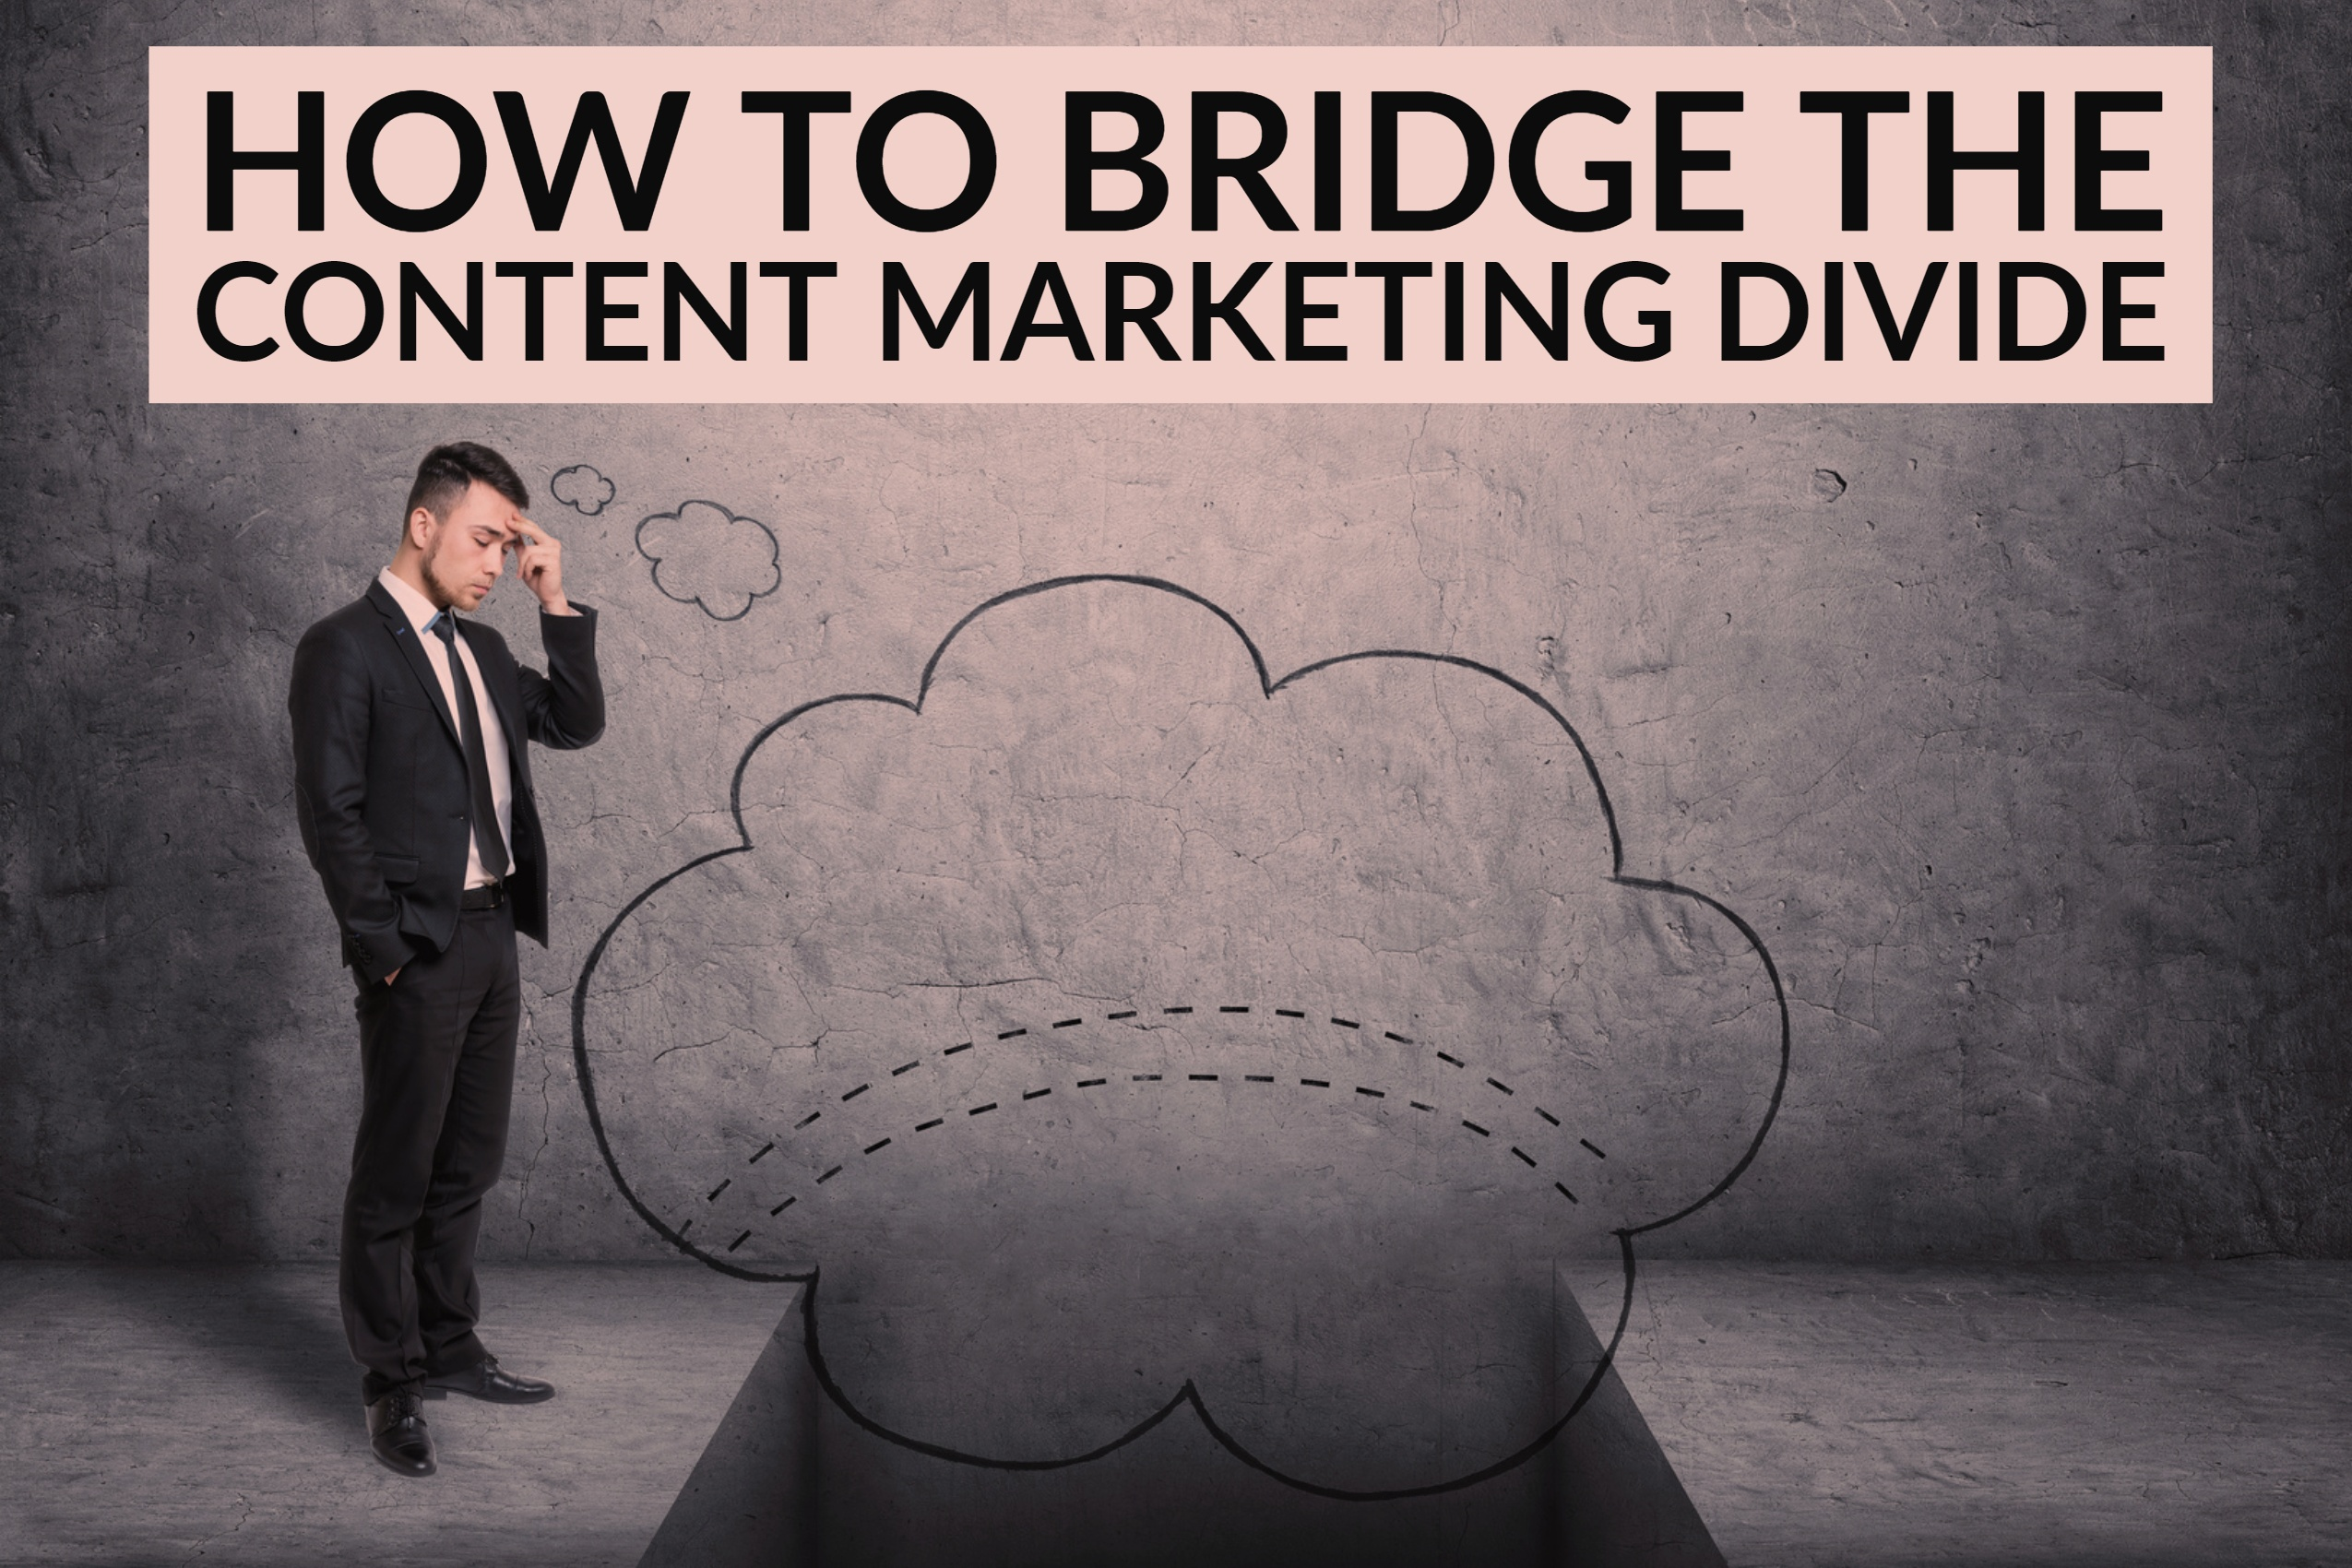 How To Bridge The Content Marketing Divide